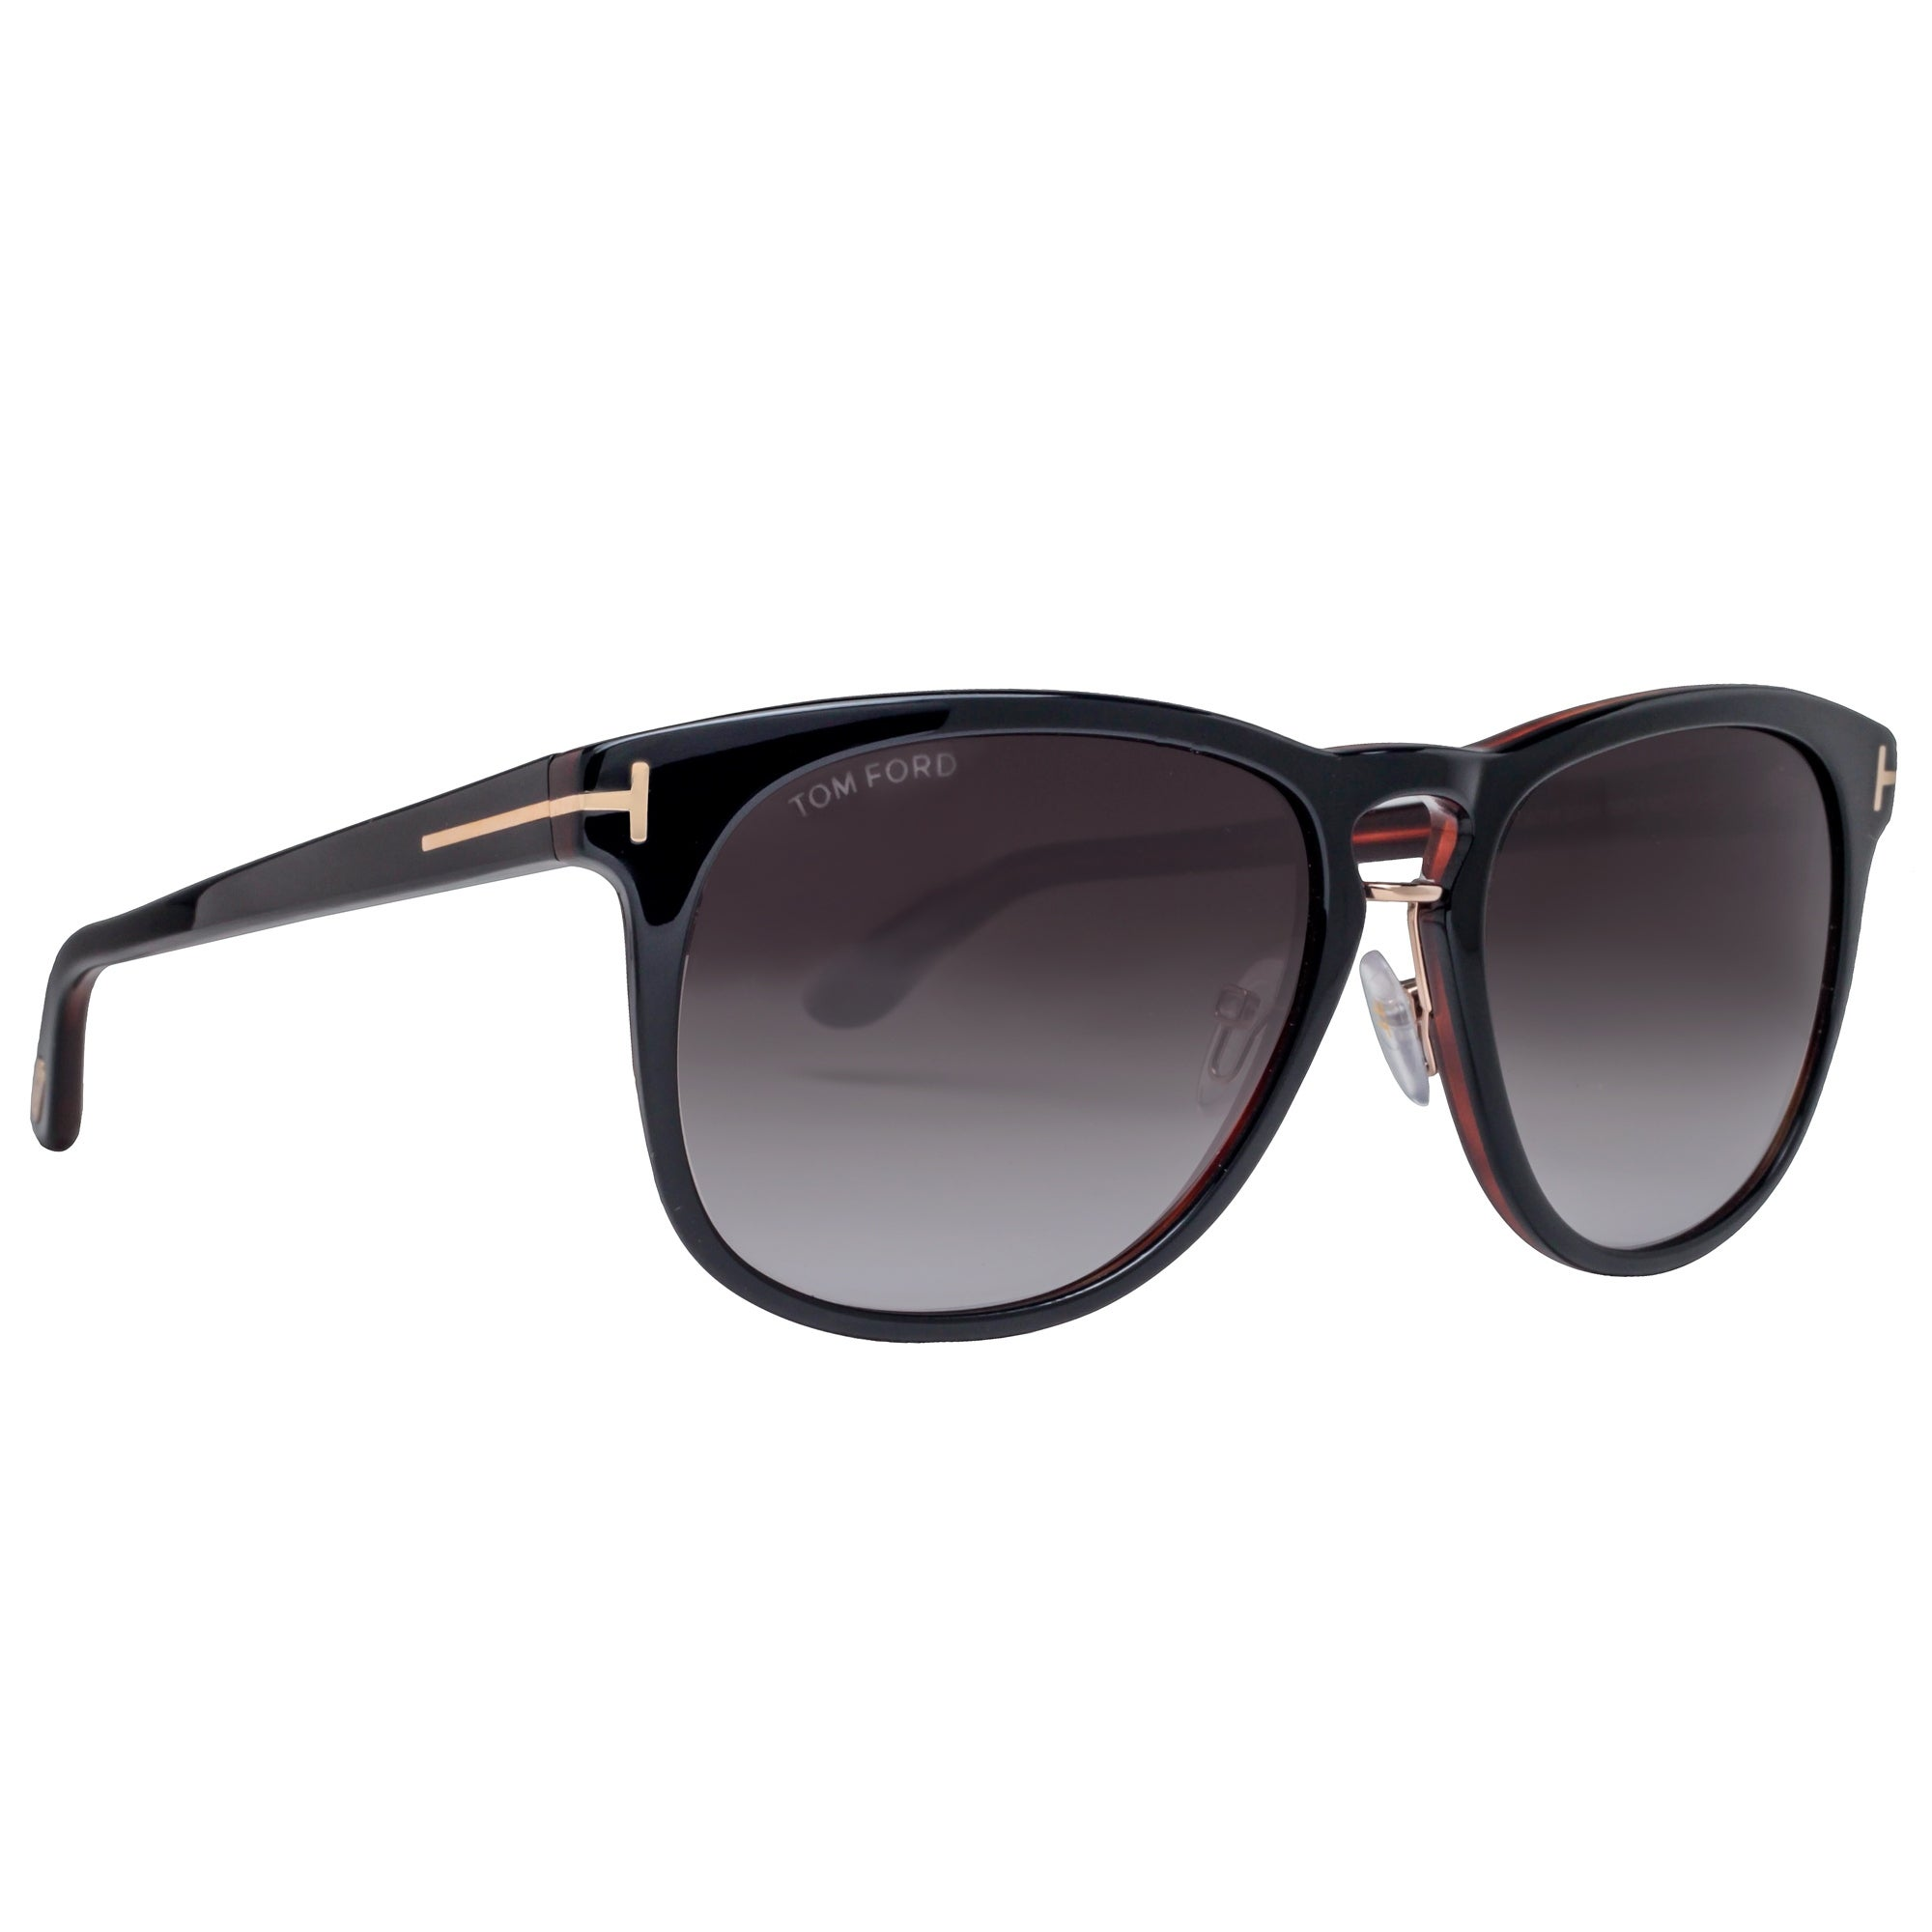 3adf26fcbb2 Shop Tom Ford Franklin TF 346 01V 59mm Black Brown Gray Gradient Square  Sunglasses - 59mm-17mm-145mm - Free Shipping Today - Overstock - 16994476